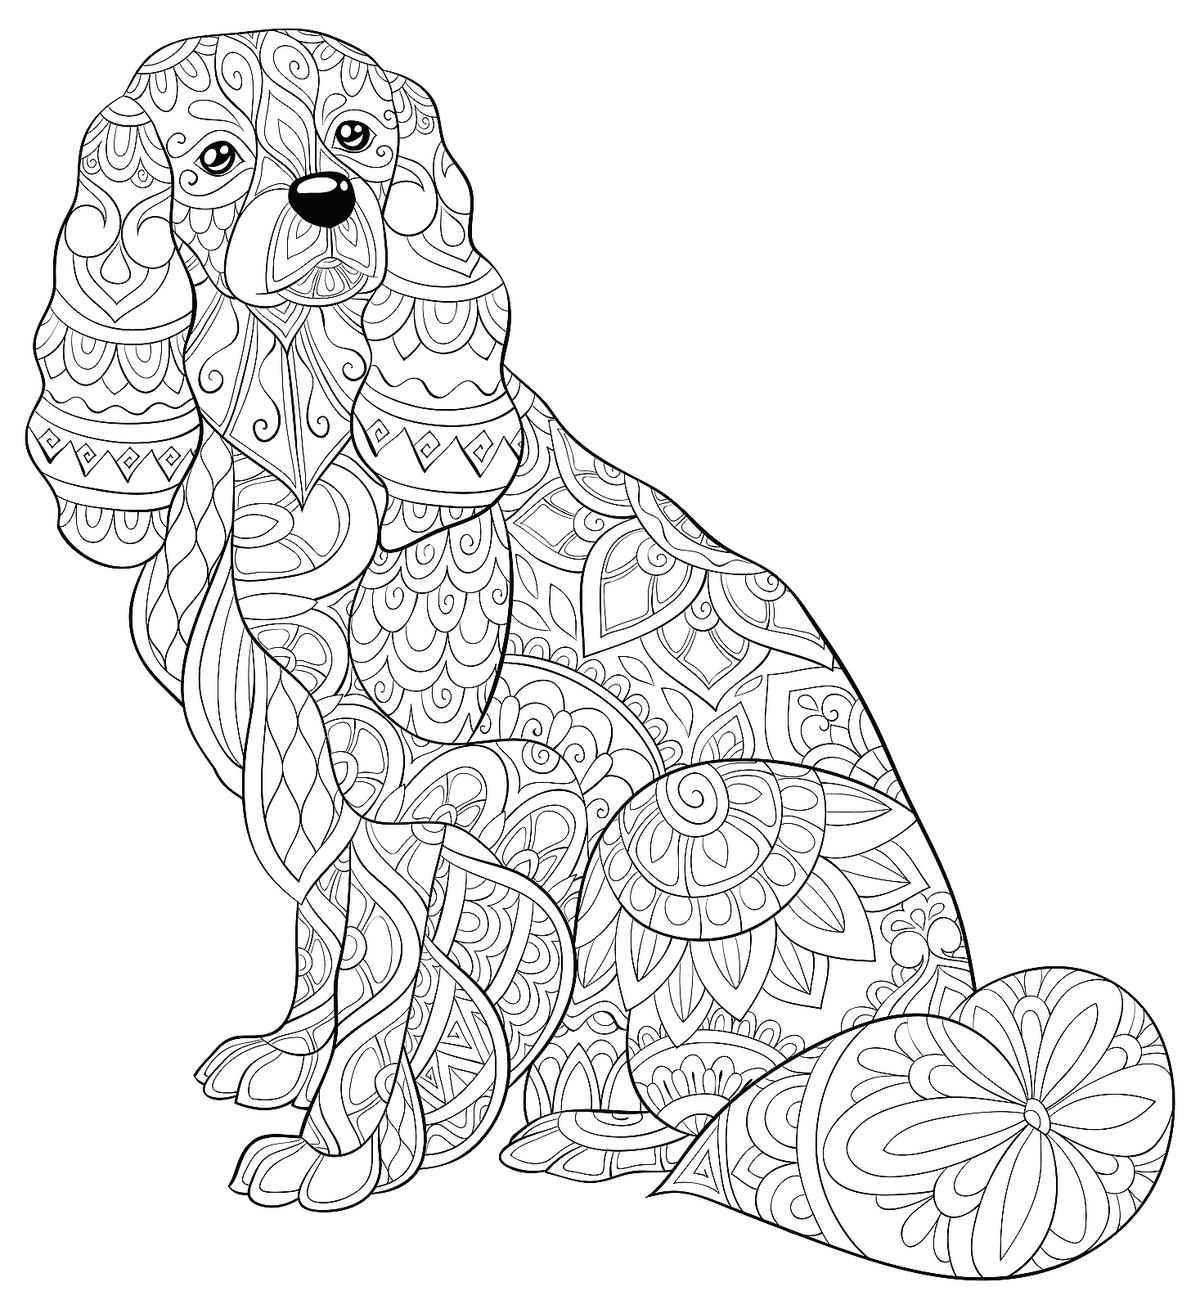 coloring pages of dogs printable pug dog coloring page coloring home printable pages dogs coloring of